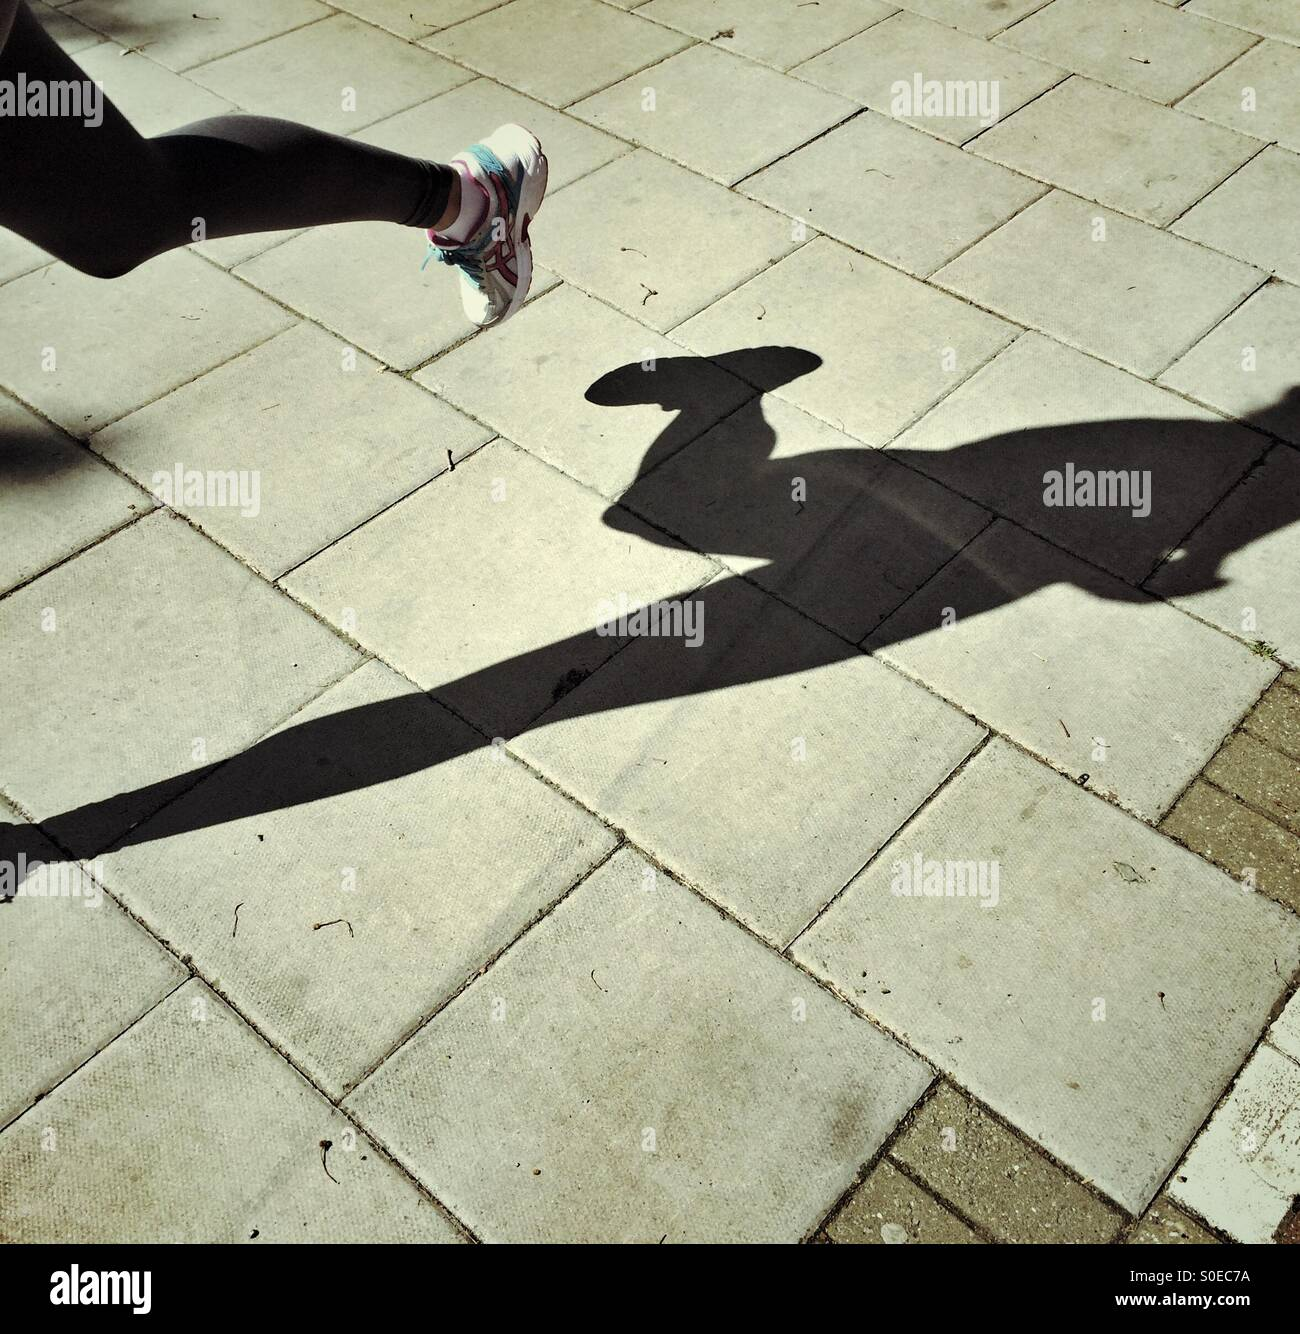 Shadow of an athlete who is running - Stock Image